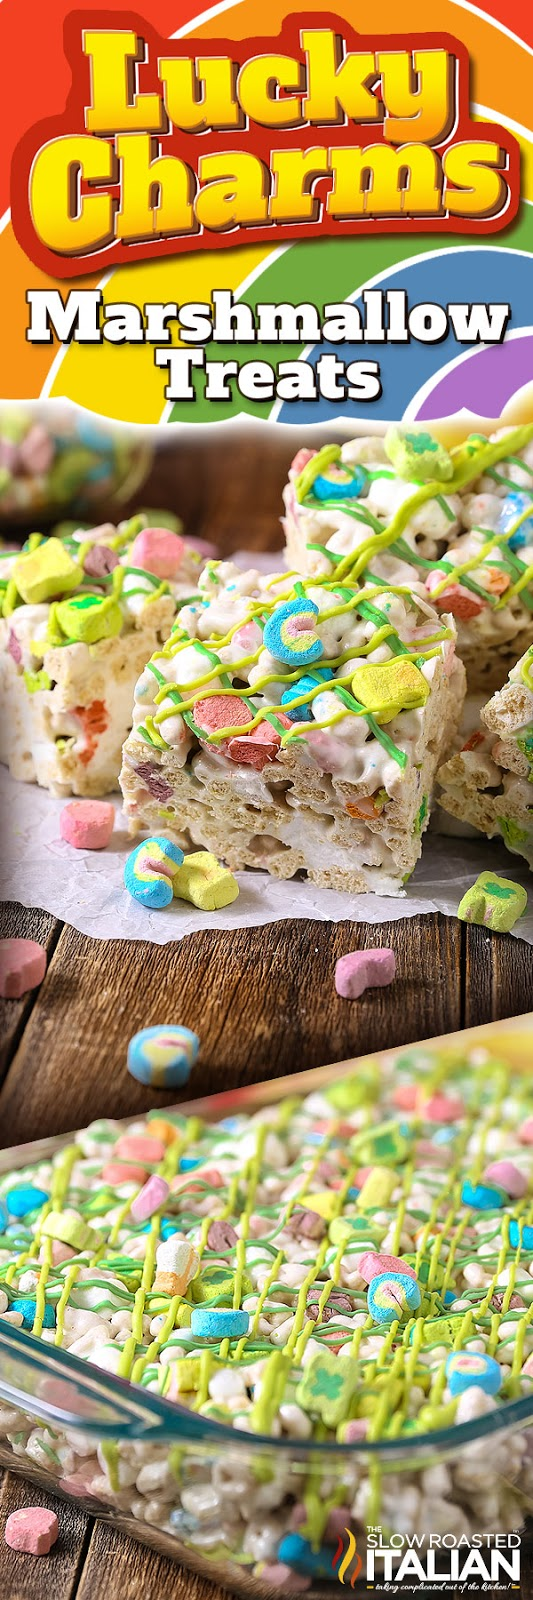 Lucky Charms Marshmallow Treats are a fantastic St. Patrick's Day (or any day) confection!!! This simple recipe is only 4 ingredients and its bursting with charms. This easy dessert is loaded with ooey gooey marshmallows to give it the perfect chewy bite. These cereal treats are magically delicious!   This is the perfect treat to take to school, work and a potluck too!